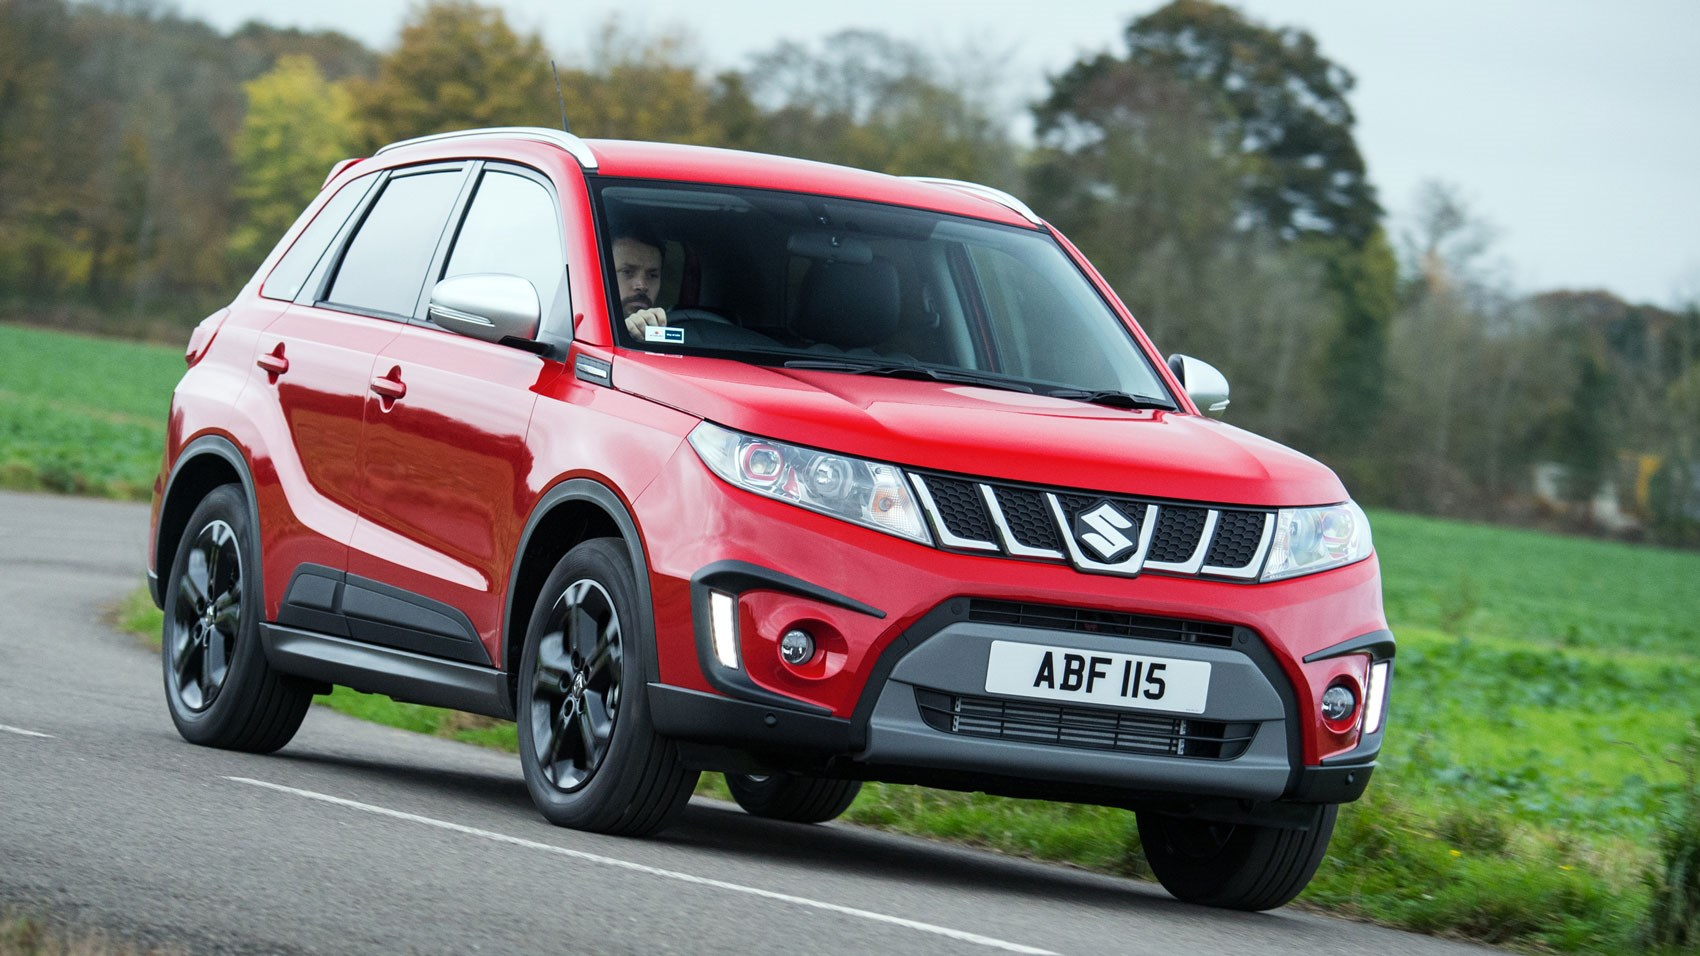 Suzuki Vitara S (2018) review: simple 4x4 pleasure | CAR ...